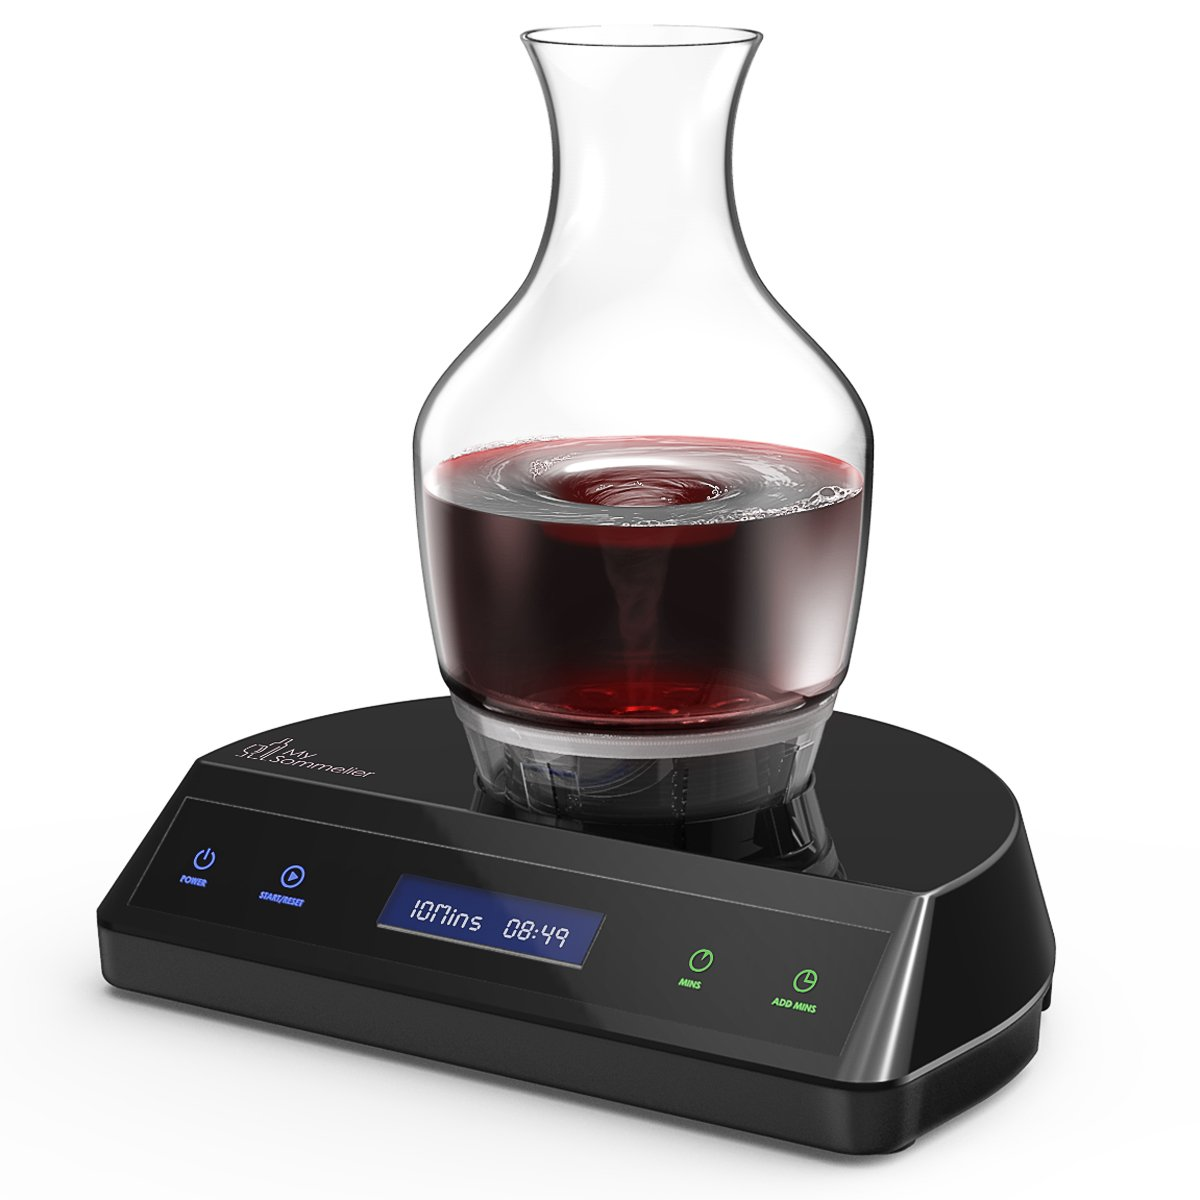 HUMBEE Chef My Sommelier Electric Wine Aerating Decanter, Black  - DB-01-BK by HUMBEE Chef